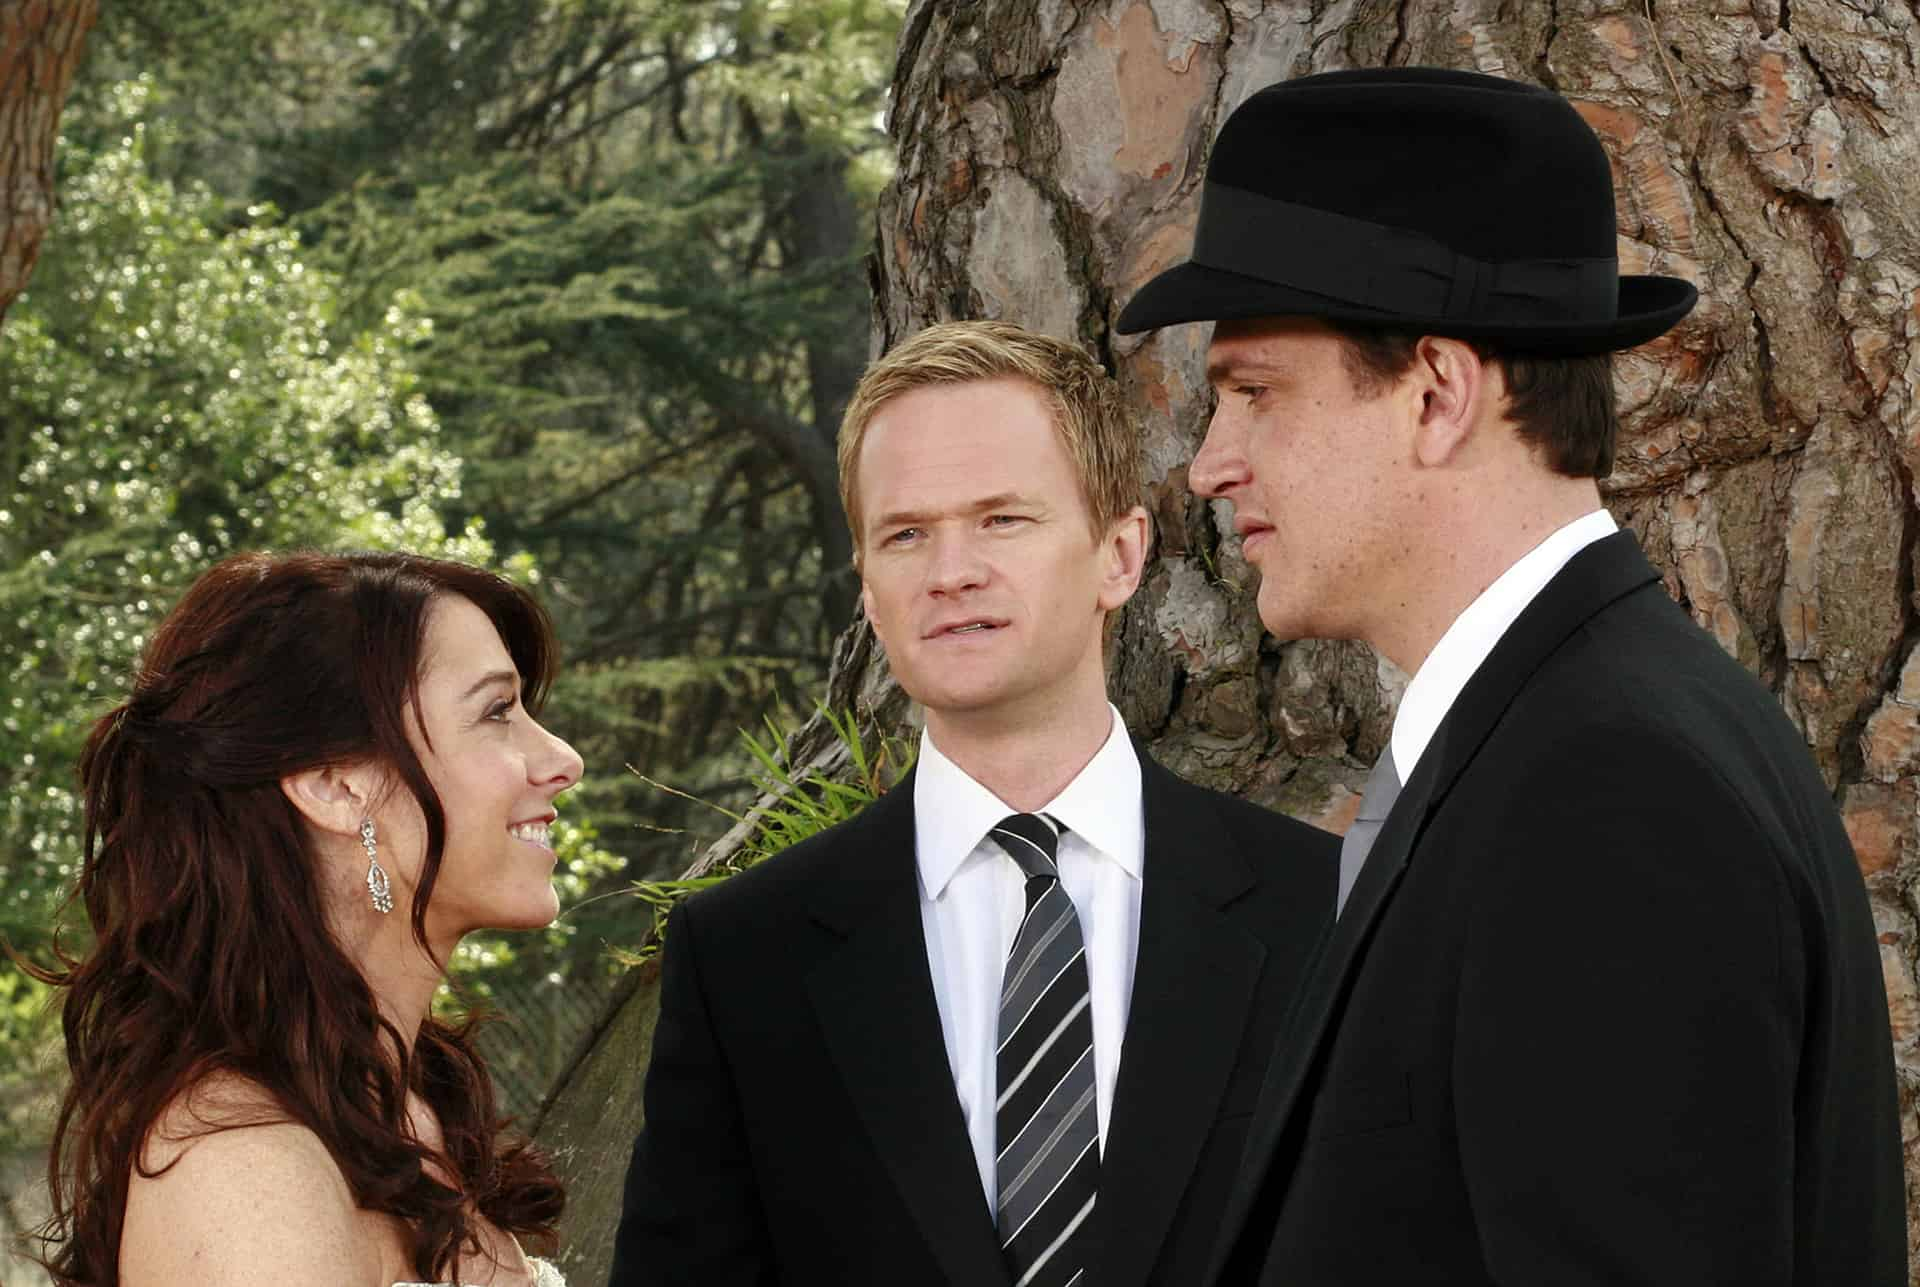 personaggi iconici marshall e lily how i met your mother